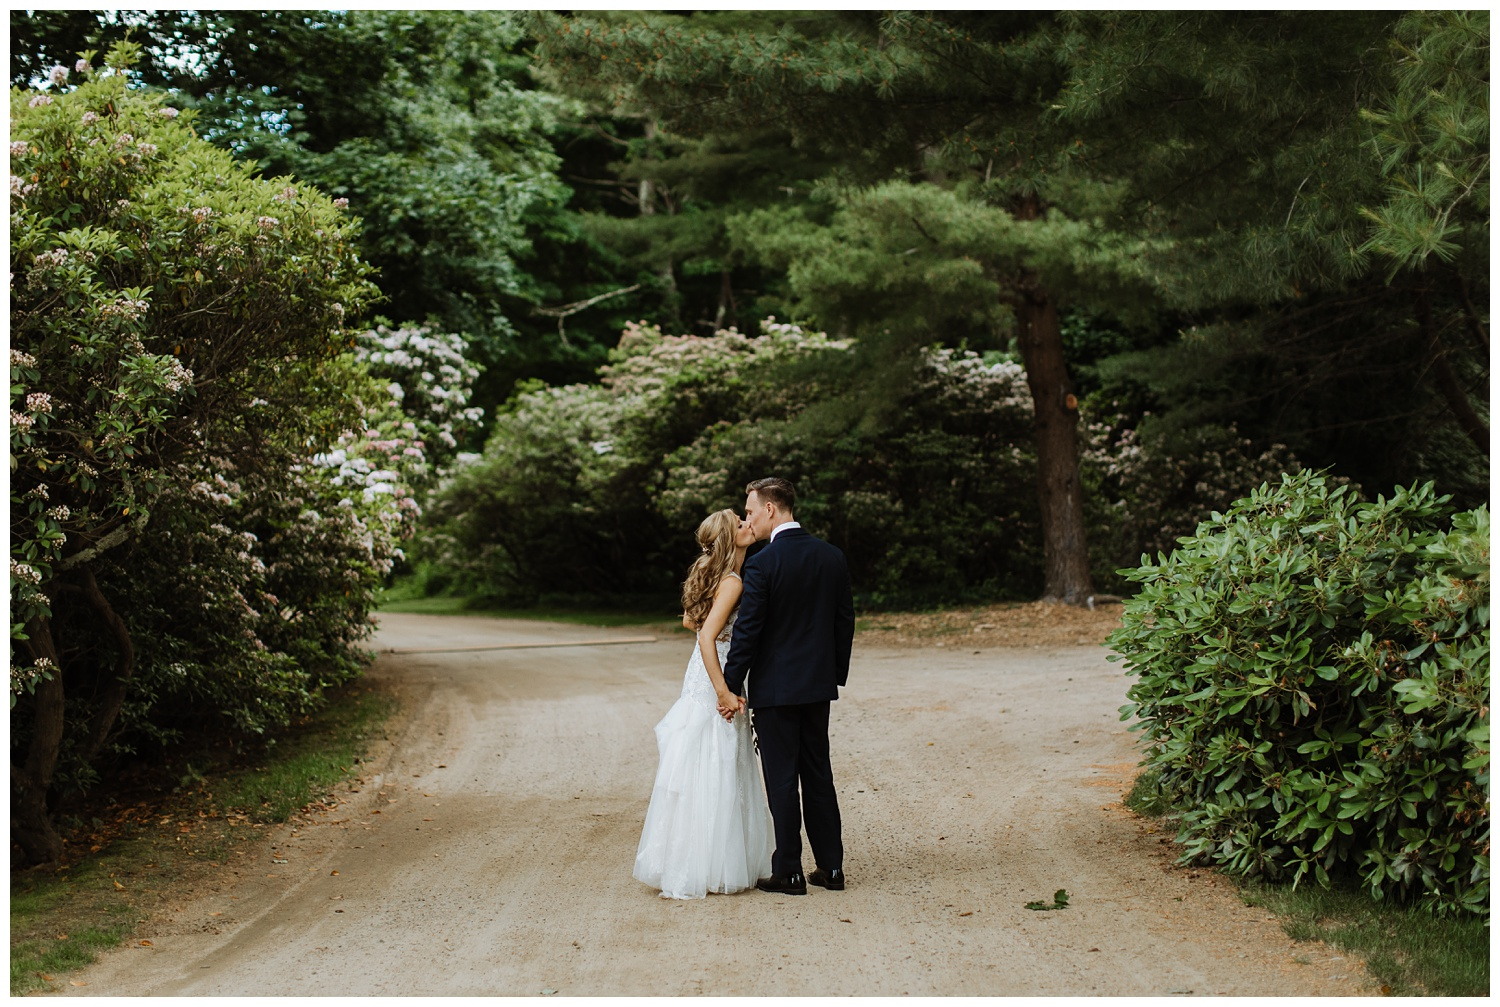 Beth + Mike | Summer Wedding at The Estate At Moraine Farm- 100.jpg